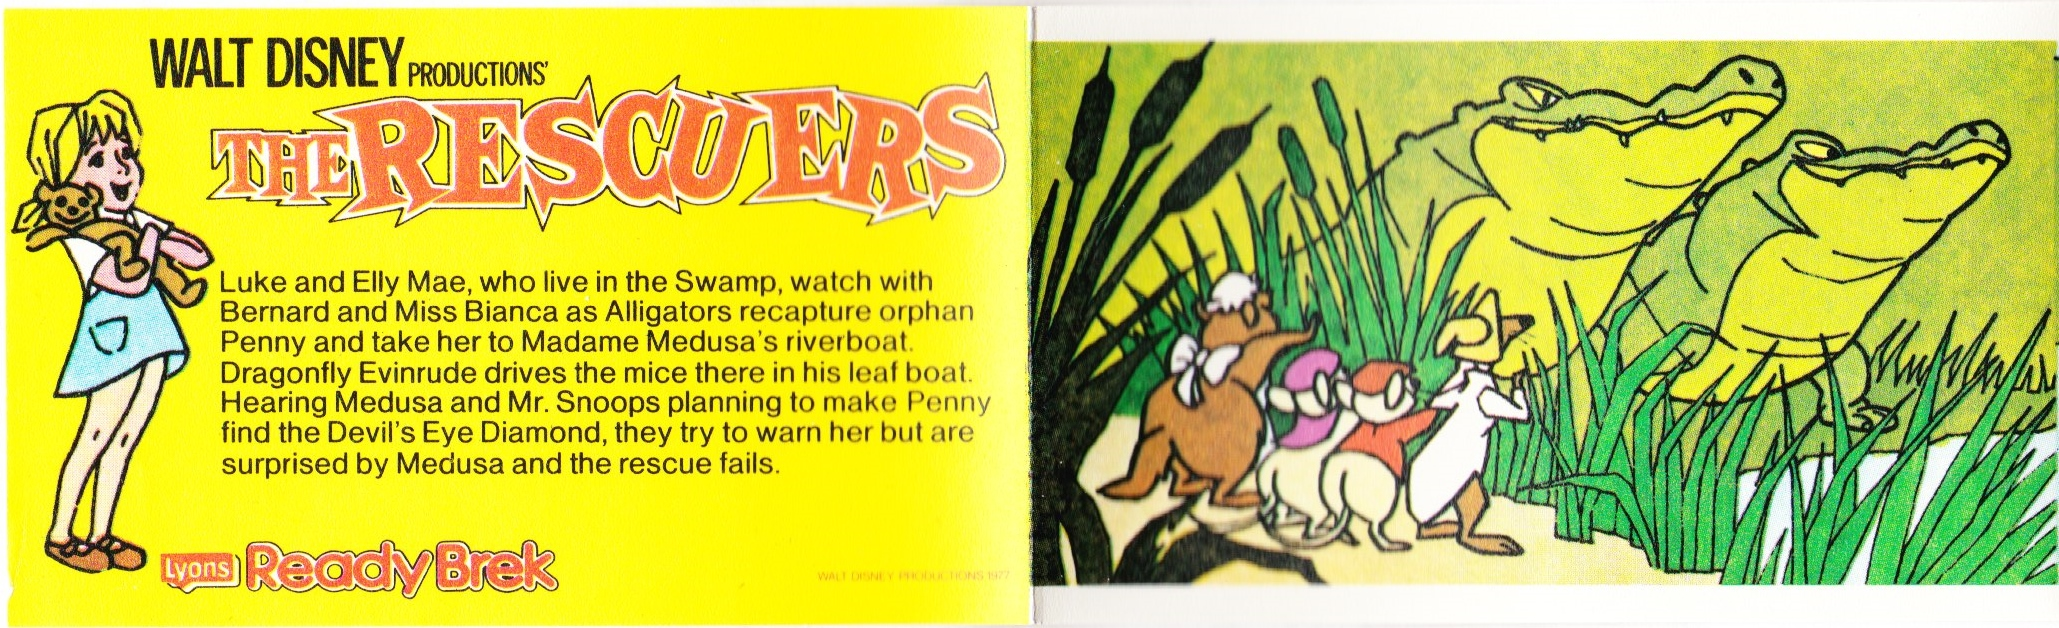 1977 Ready Brek Rescuers transfers strip 3 (2)